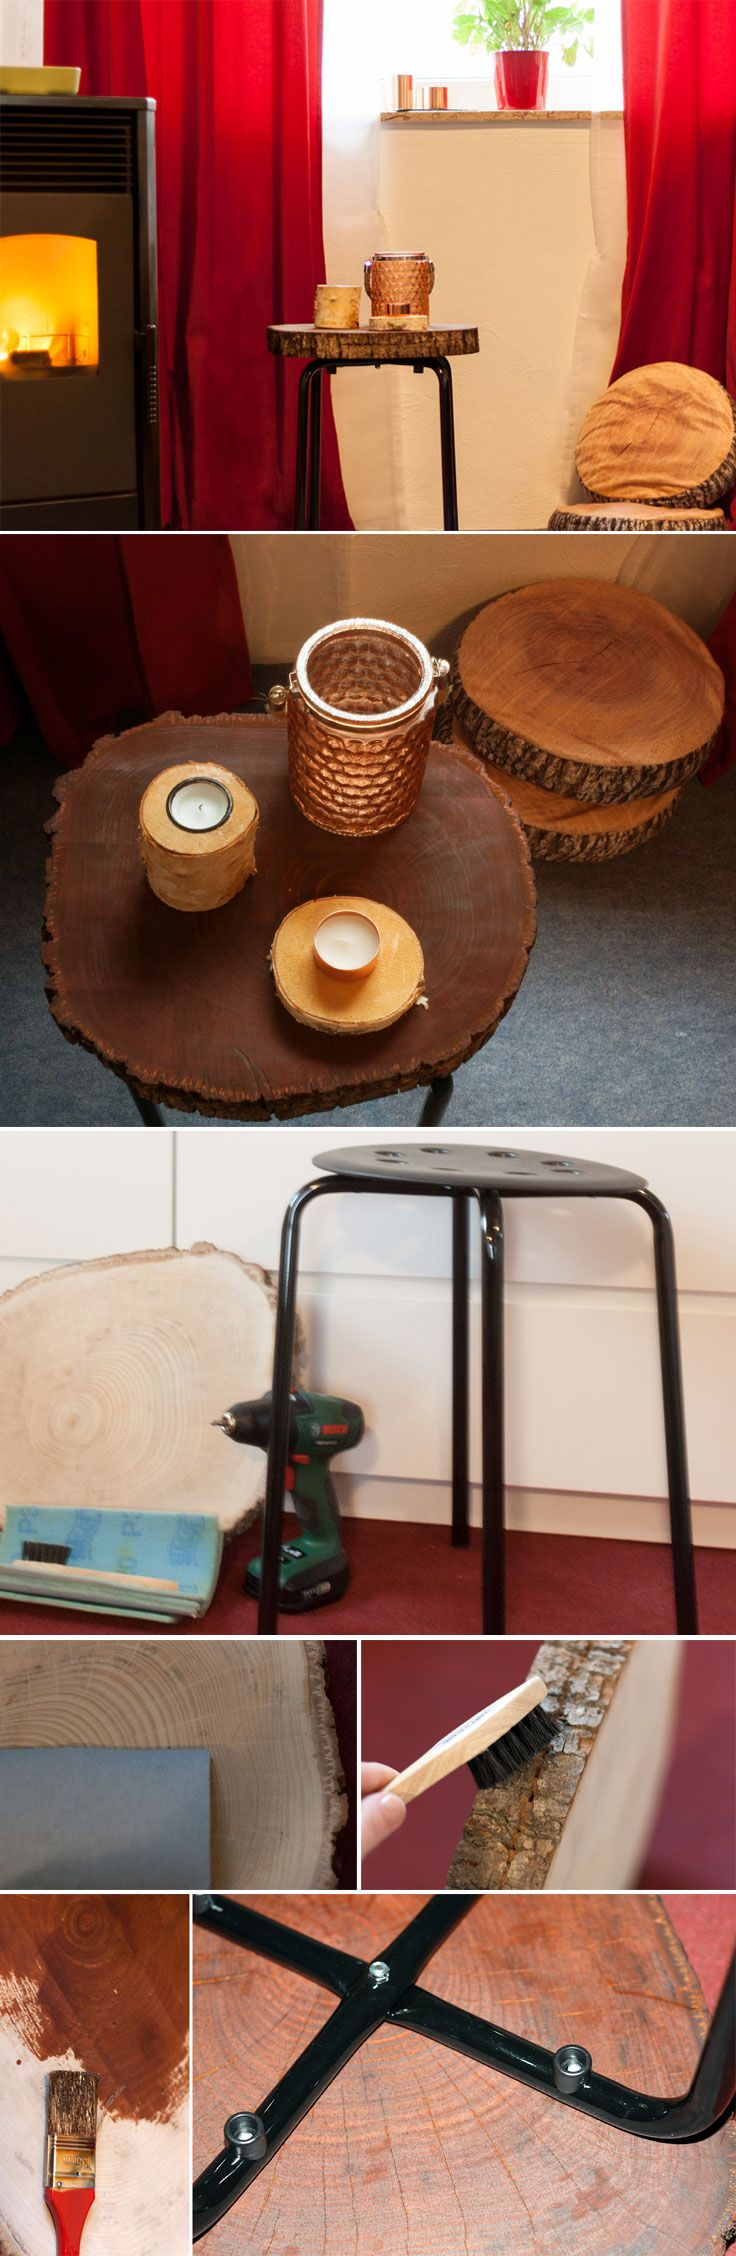 Beistelltisch mit einer Holzscheibe und einem Ikea Hocker. Stump Table from a Ikea stool.   Ikea Hack, Wood, Holz, DIY, Tree stump